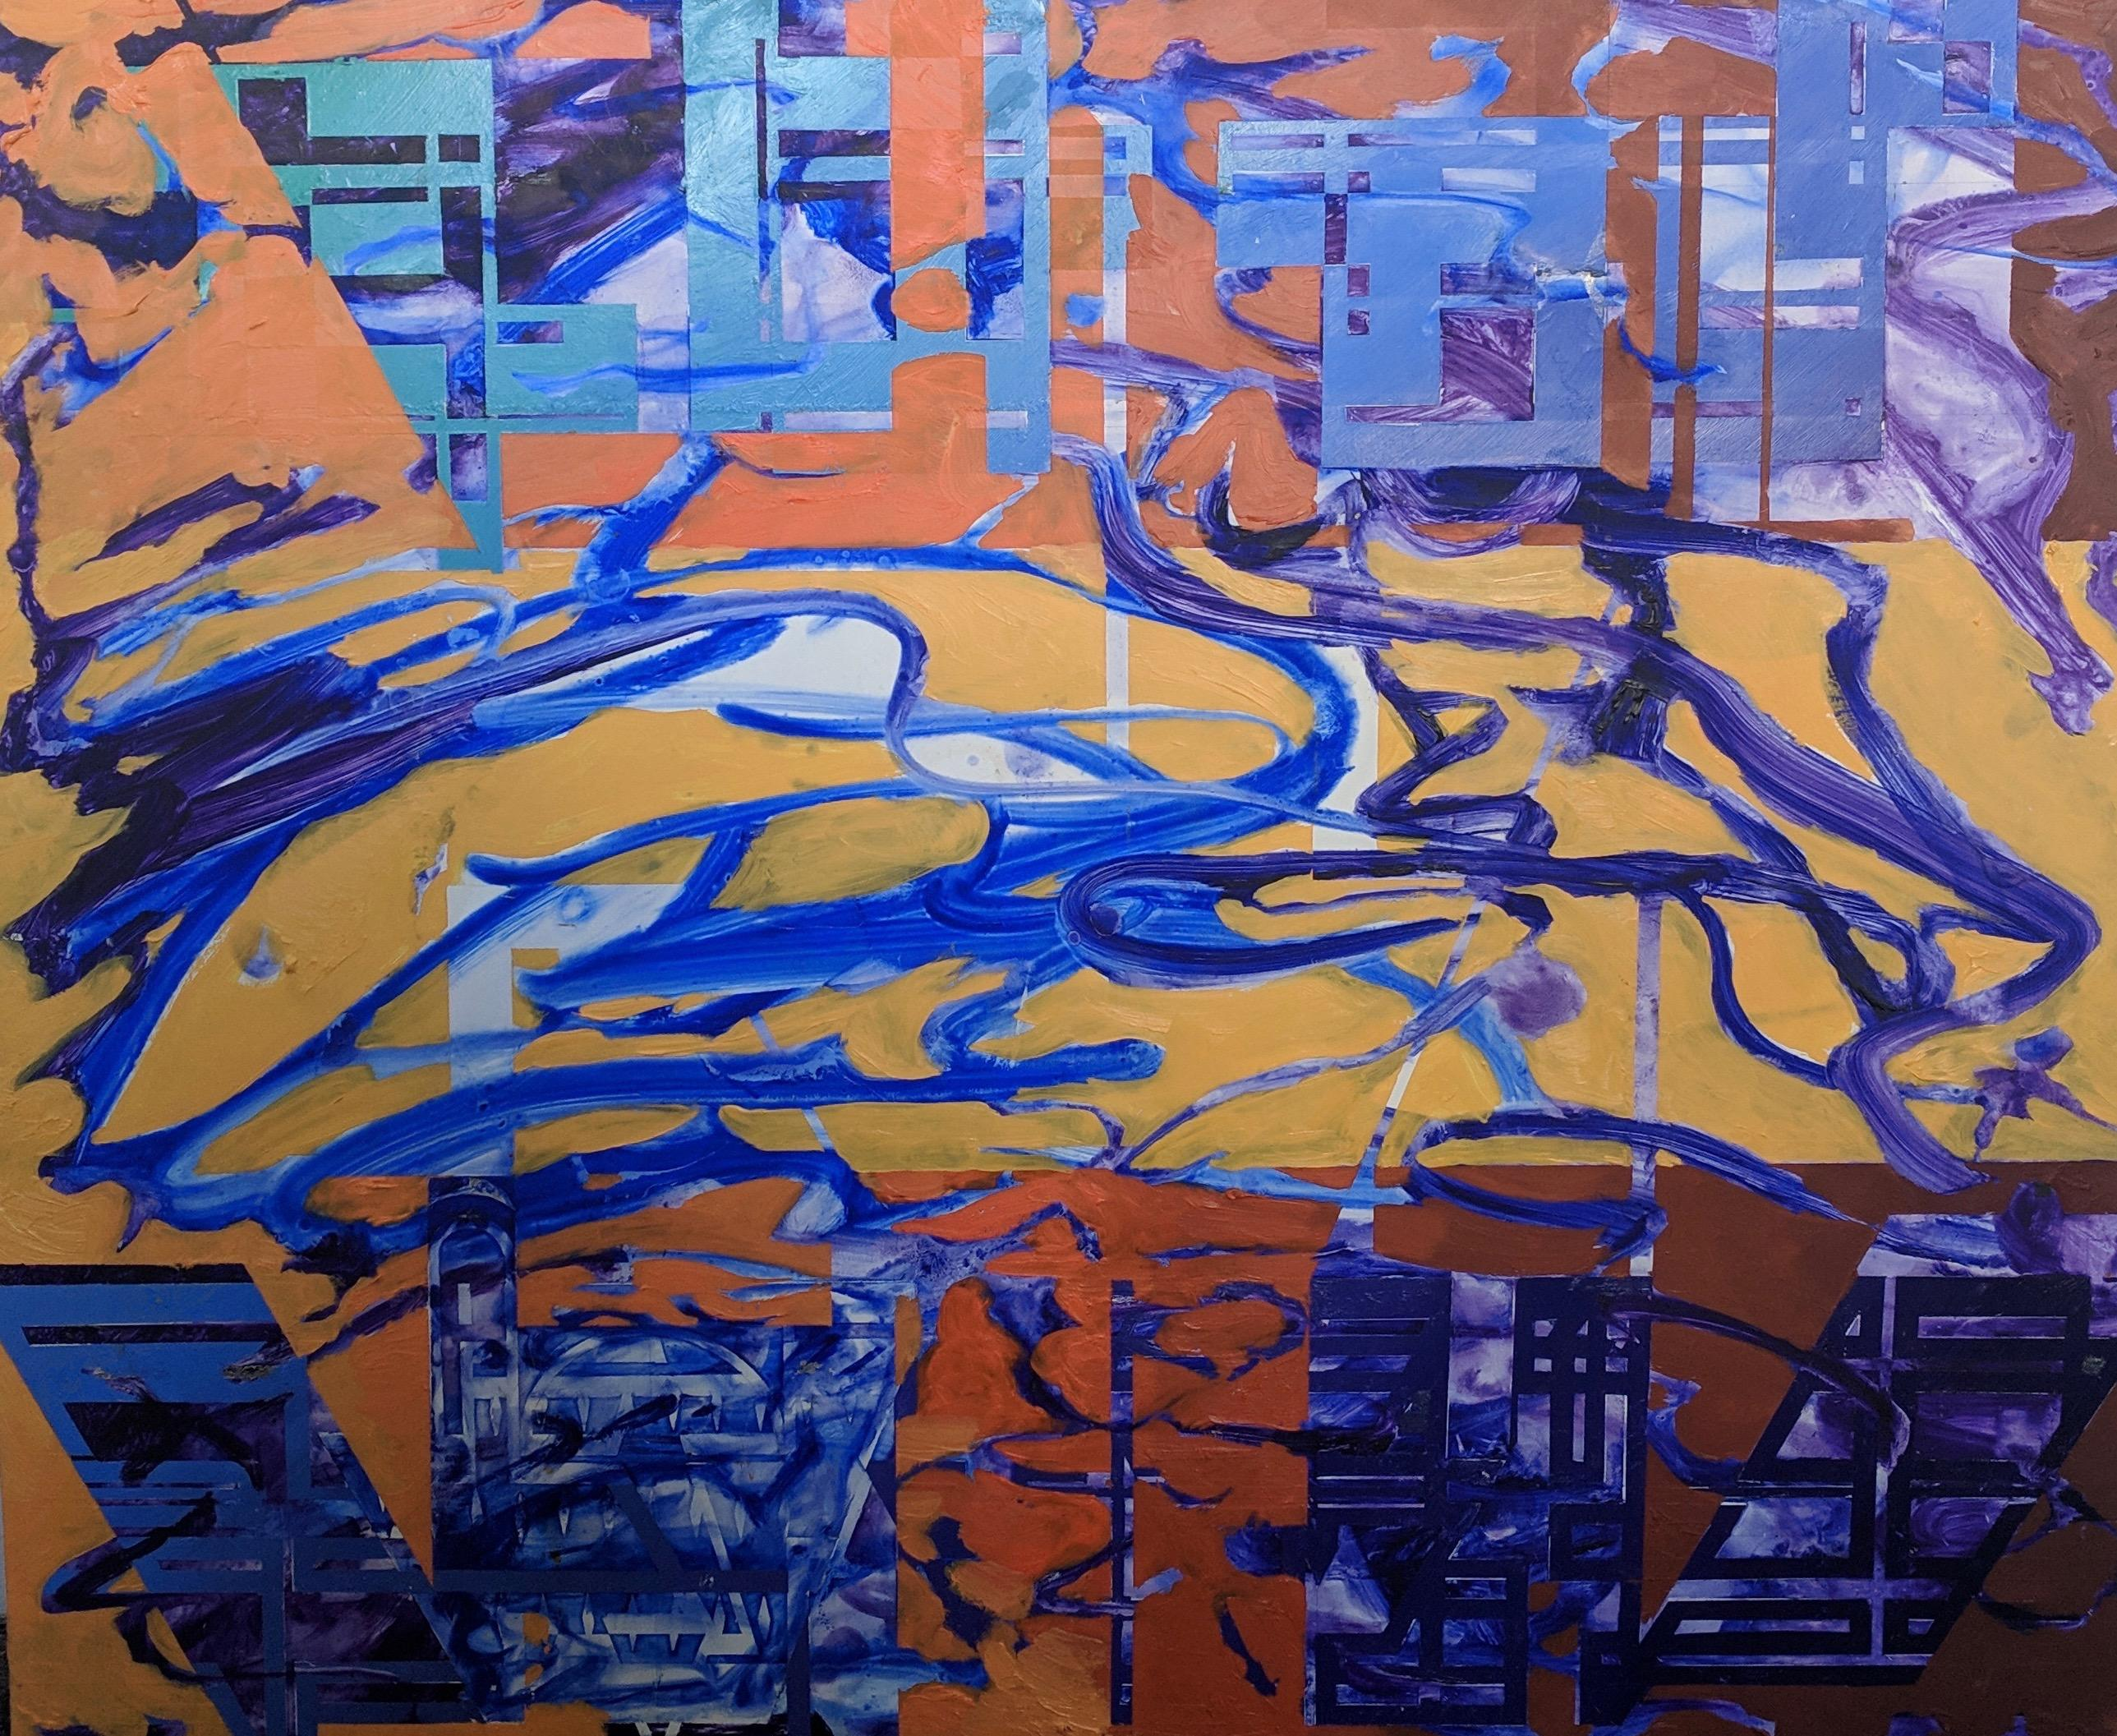 Abstract Oil Painting onBoard -- Plaza Shark Bait